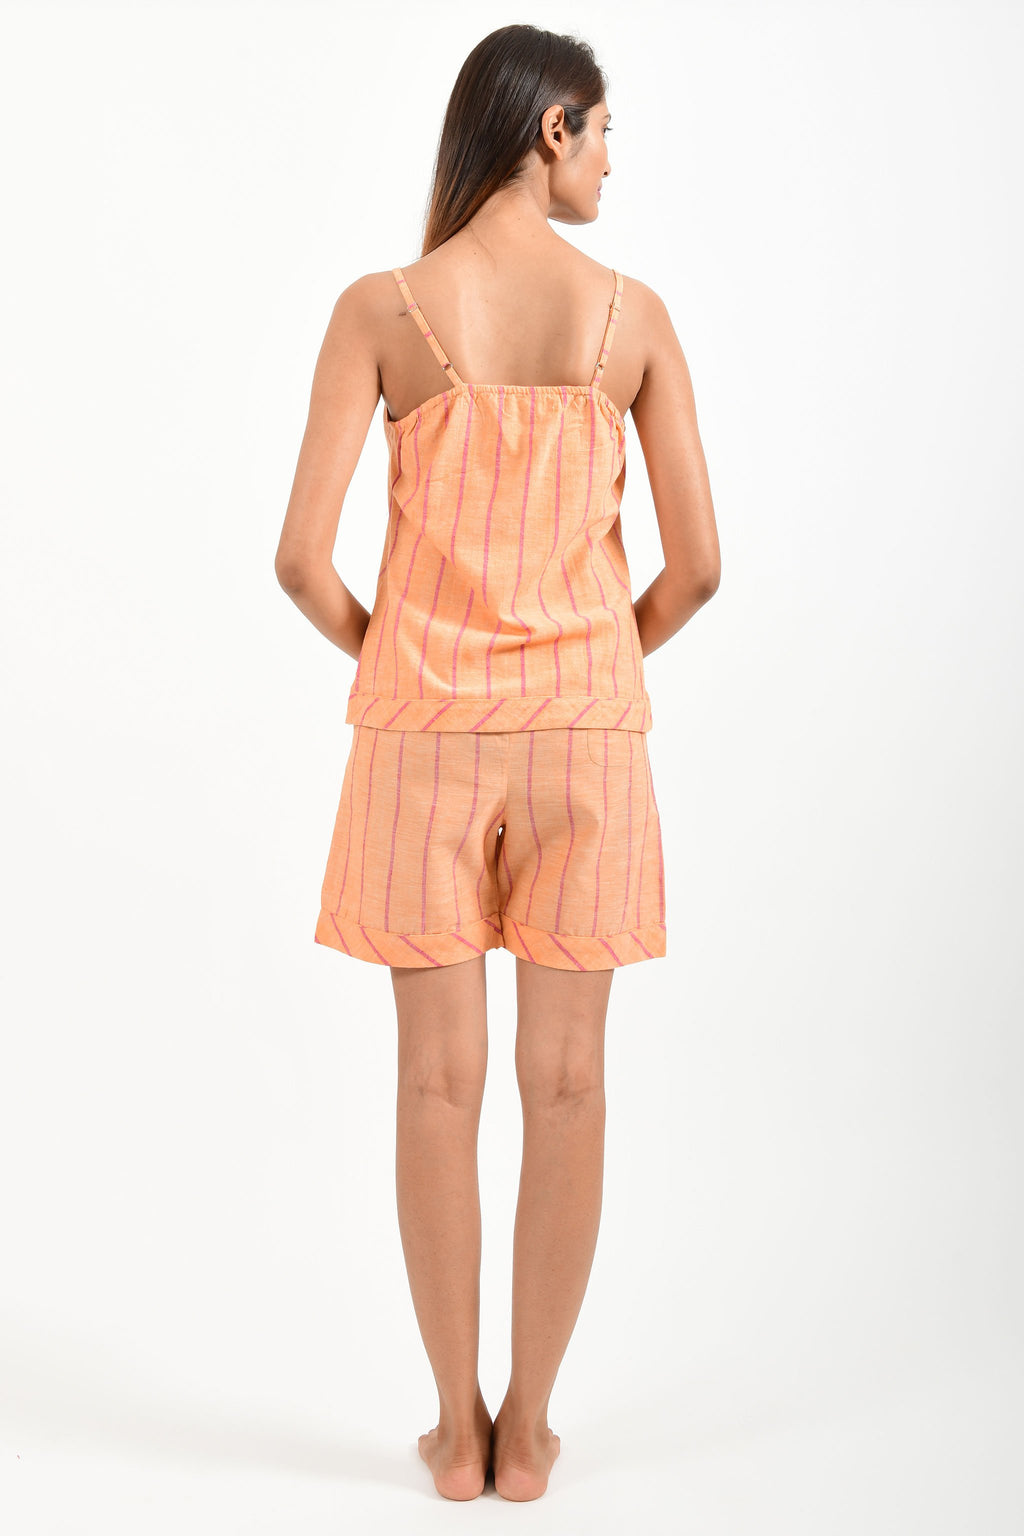 Back pose of an Indian female womenswear fashion model in azo-free dyed orange chambray (with red stripes) handspun and handwoven khadi cotton spaghetti top and boxers by Cotton Rack.